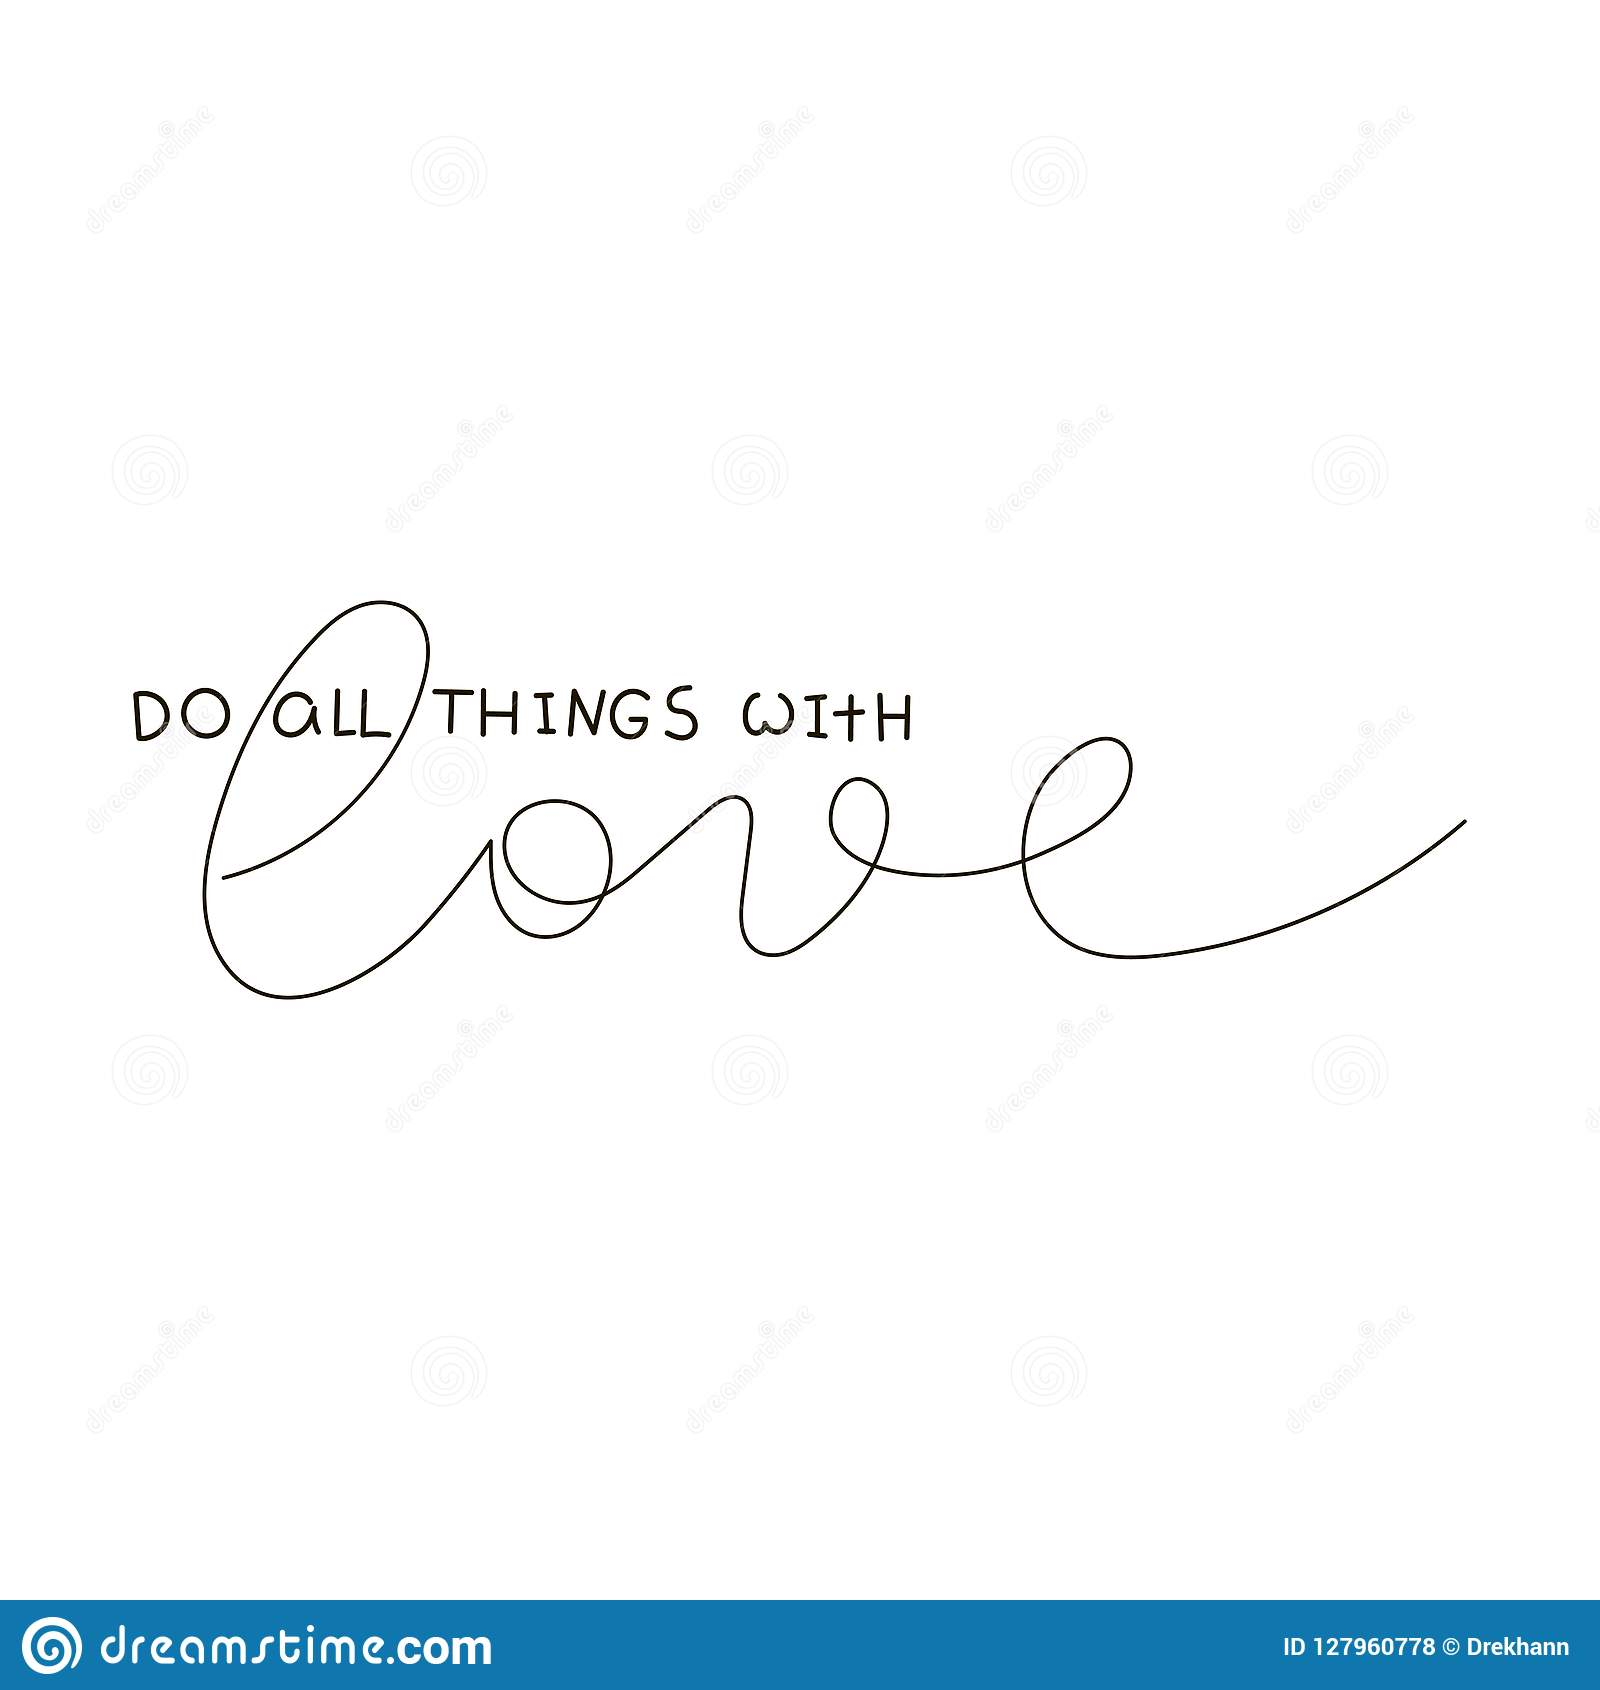 Do All Things With Love. Text For Prints, Designs, Cards